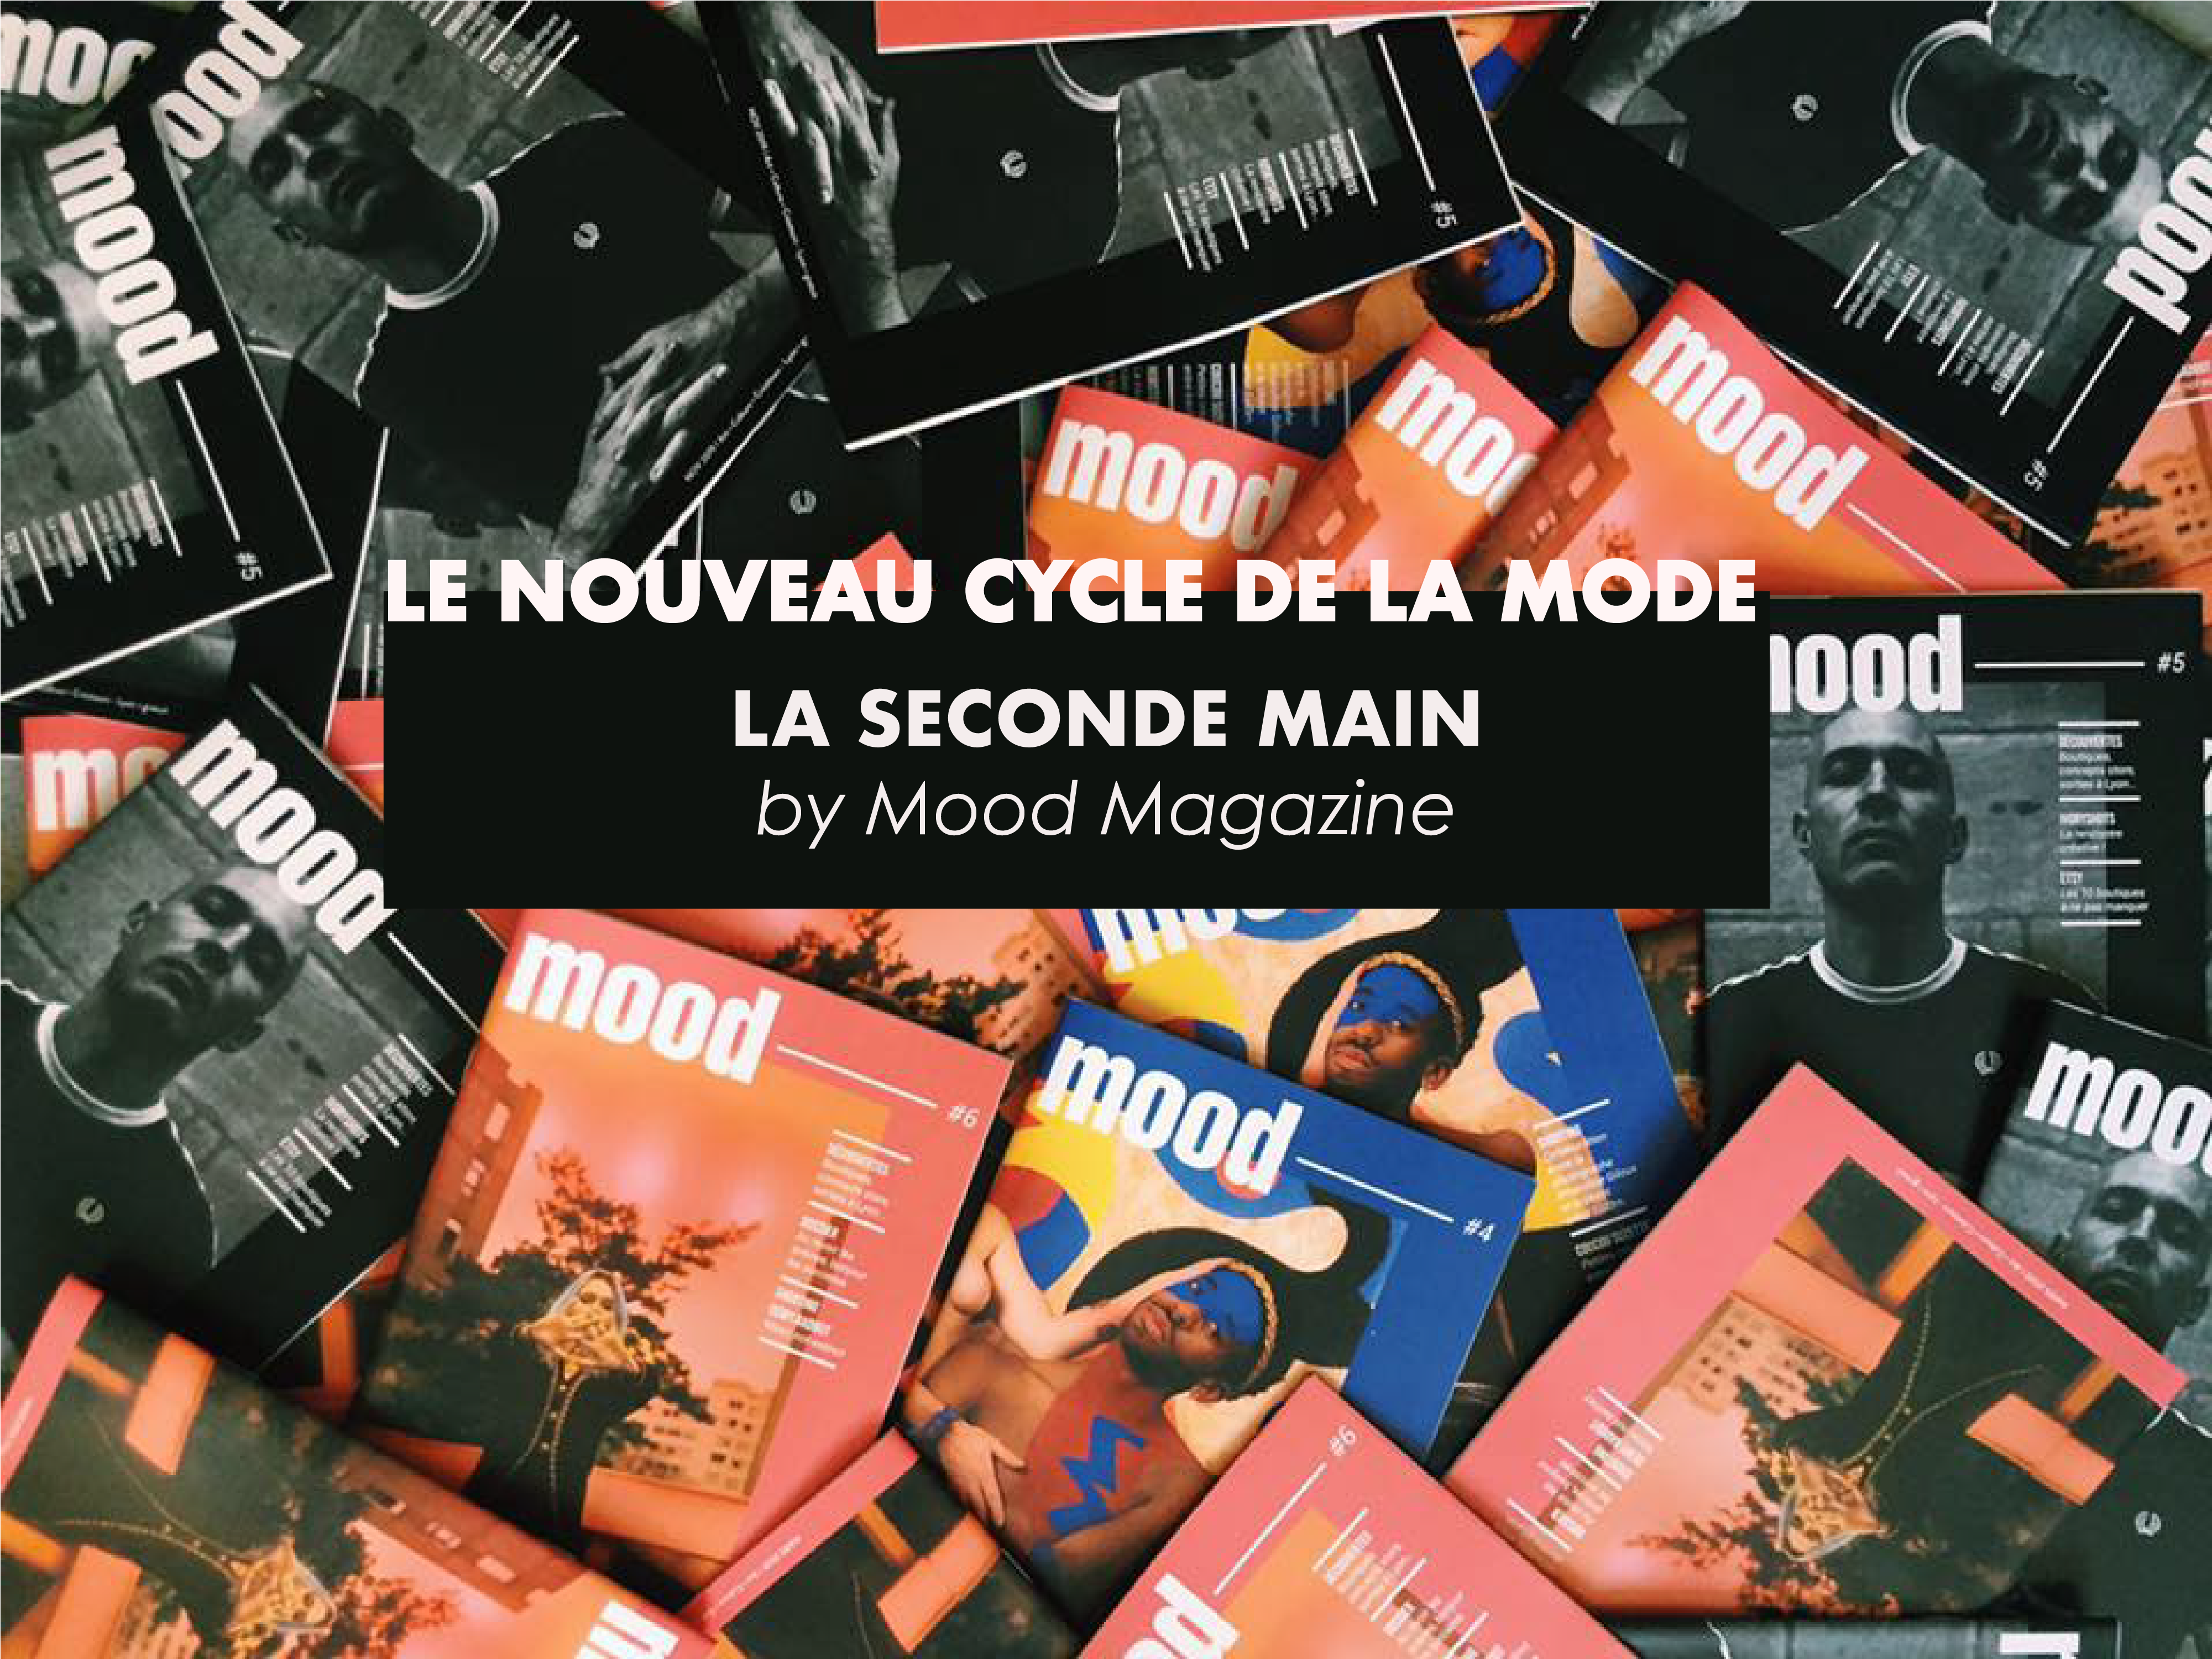 Le nouveau cycle de la mode, la seconde main by Mood Magazine